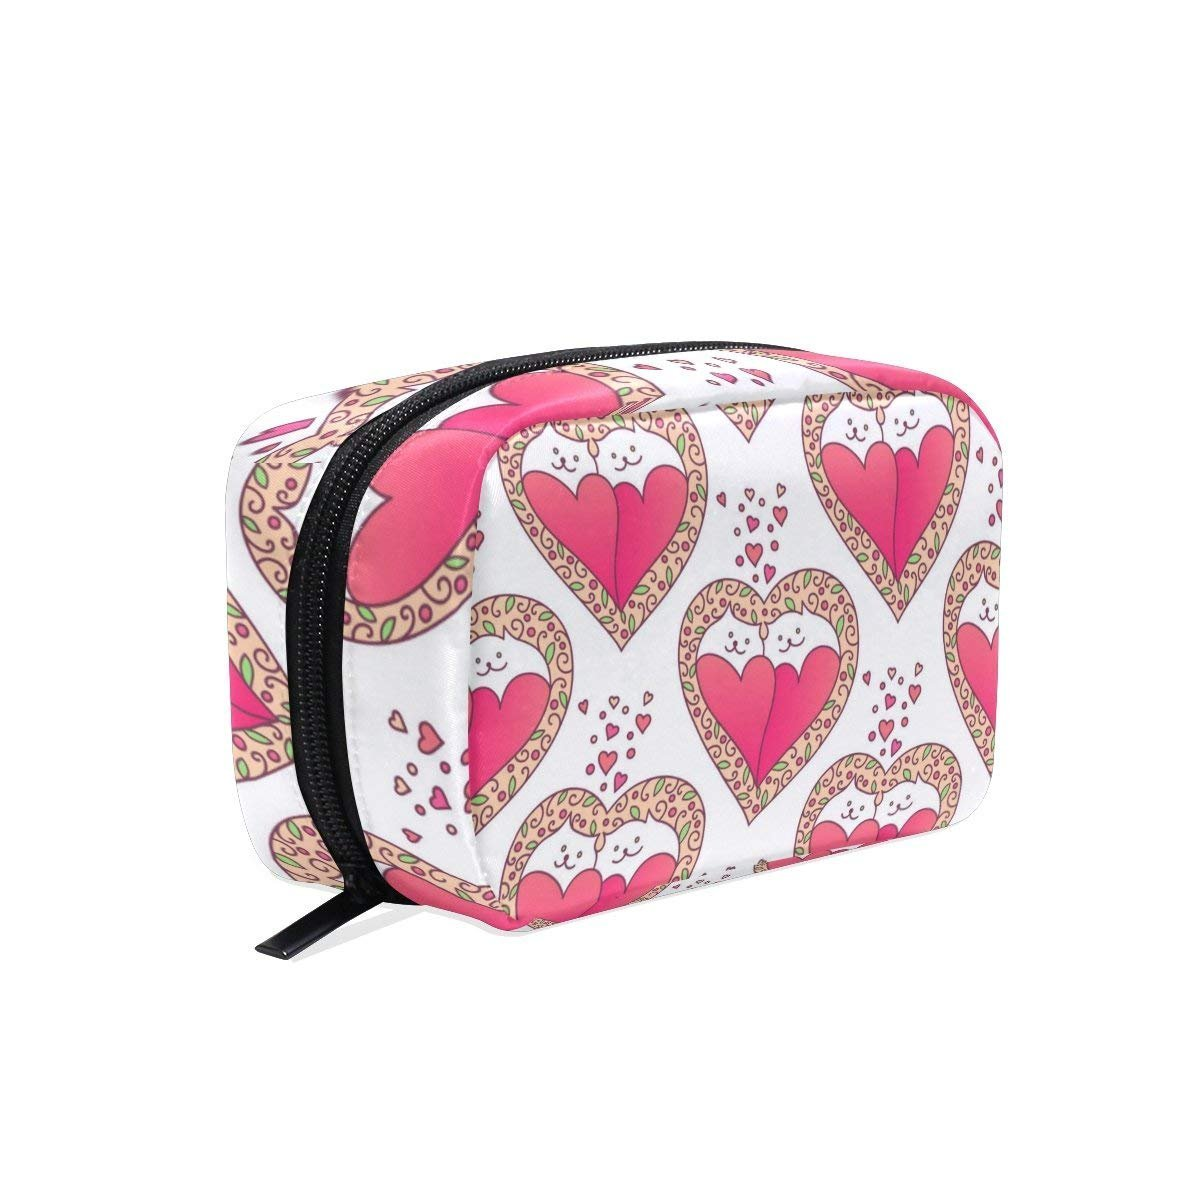 Cats Love Makeup Bag Multi Compartment Pouch Storage Cosmetic Bags for Women Travel